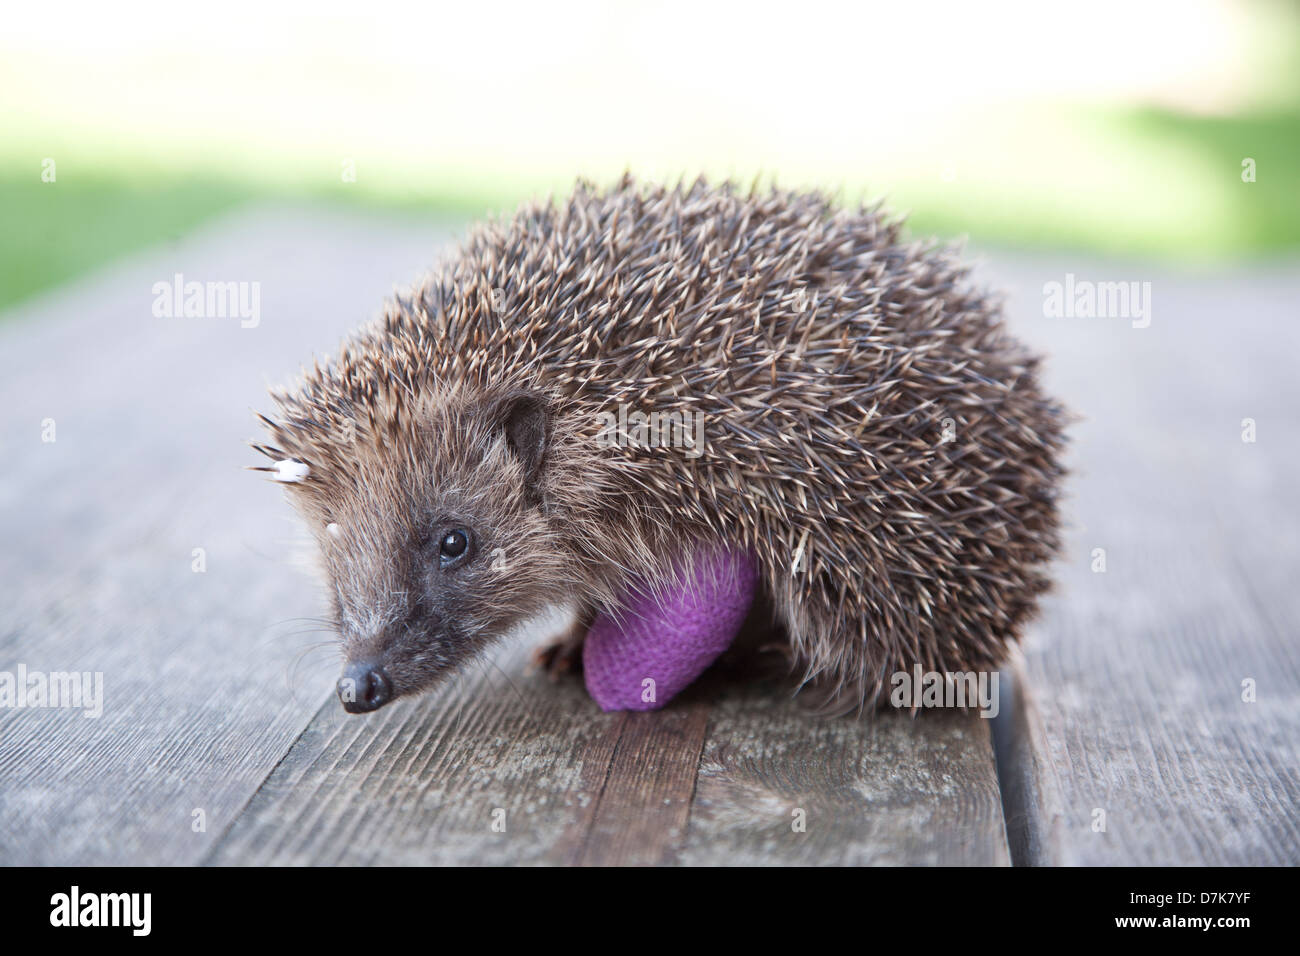 European Hedgehog with bandage on broken leg - Stock Image